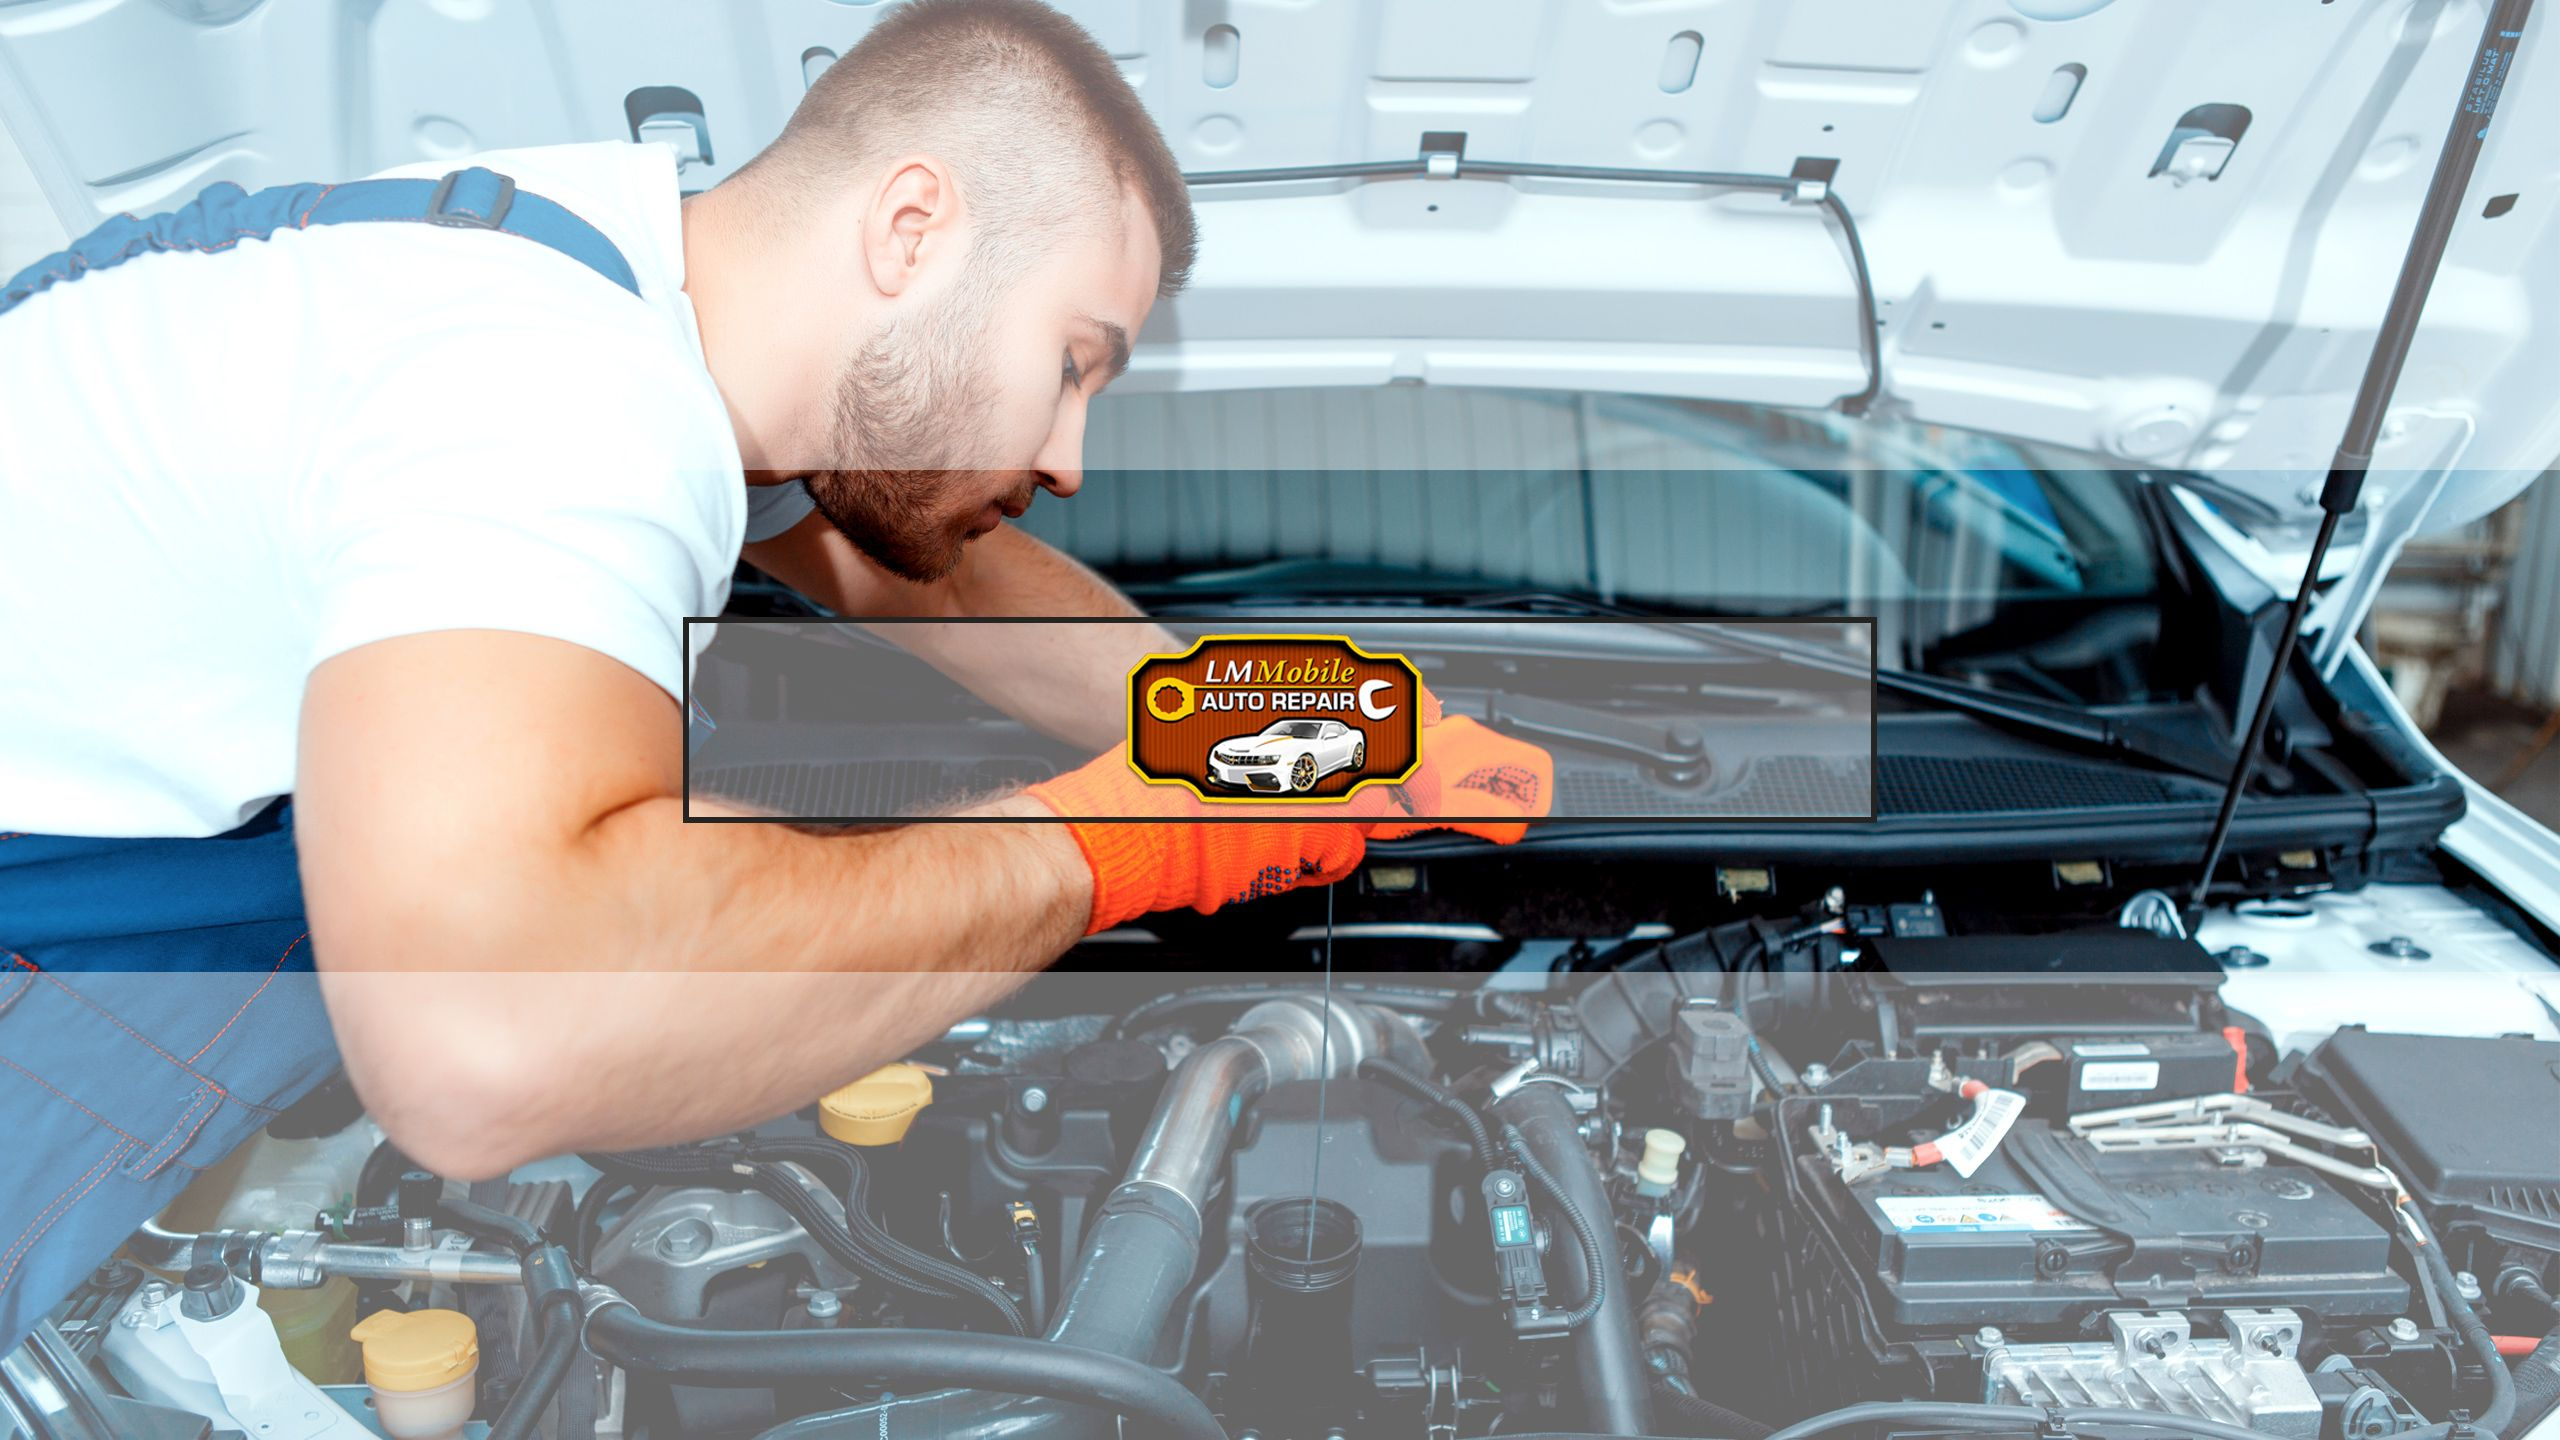 Lm Mobili ~ Lm mobile auto repair is an auto repair shop in victorville ca